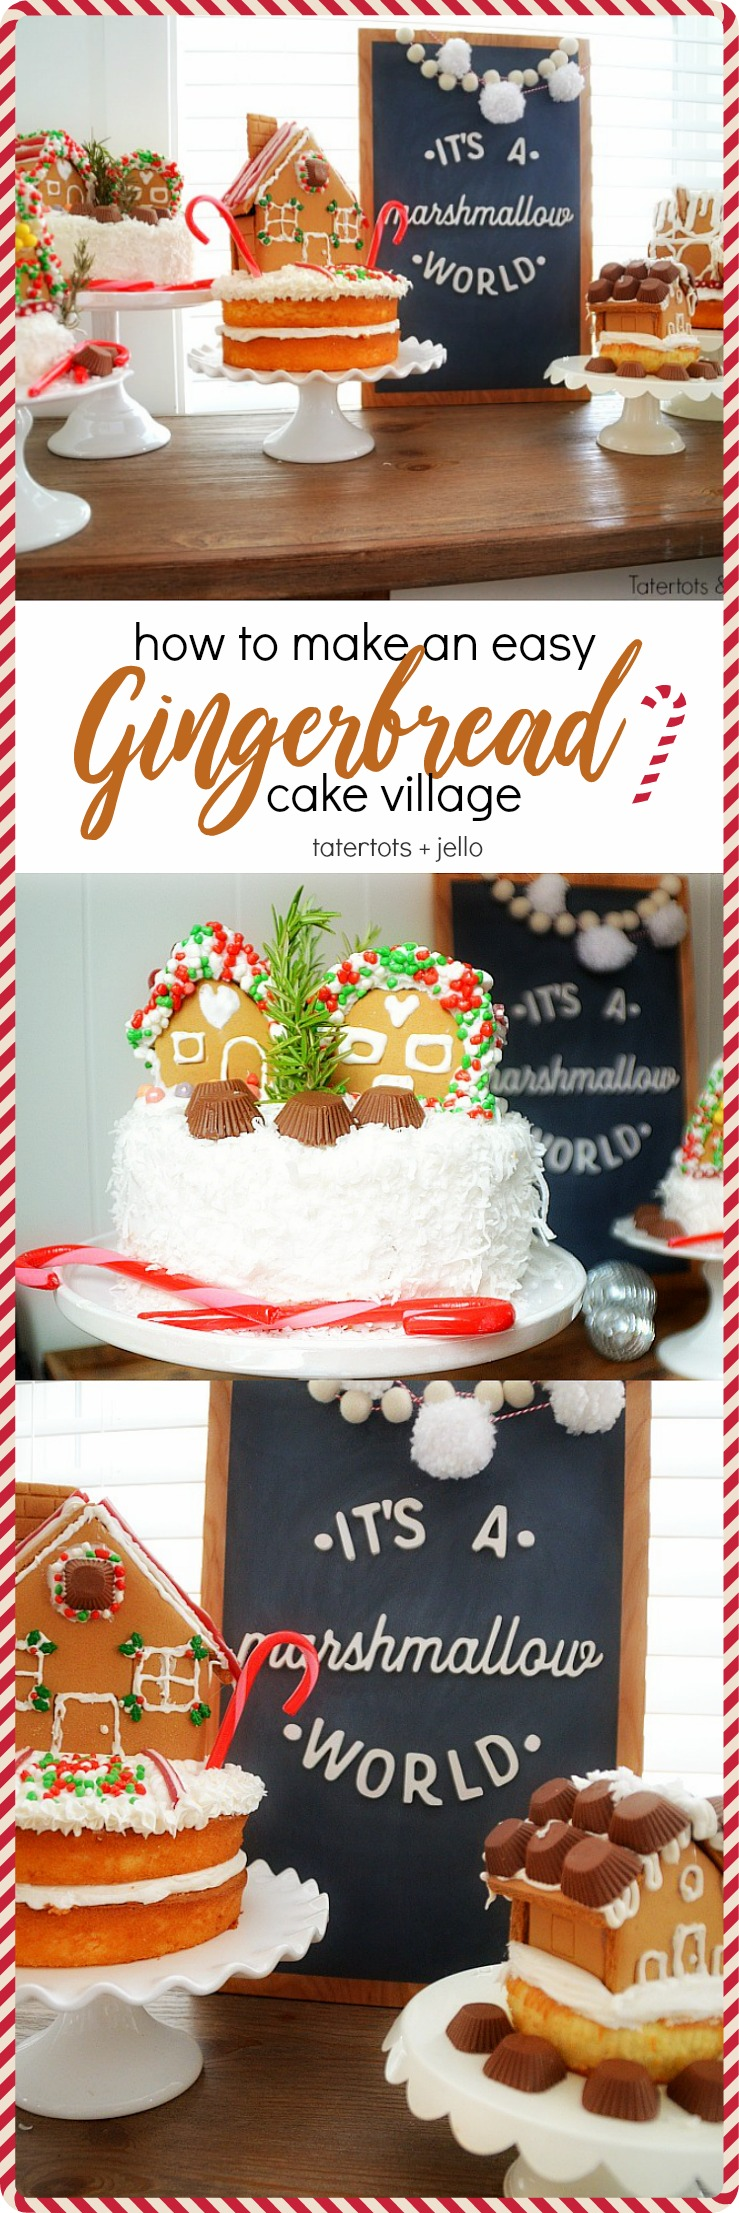 how to make an easy gingerbread cake village - kids love helping! Perfect for holiday parties.